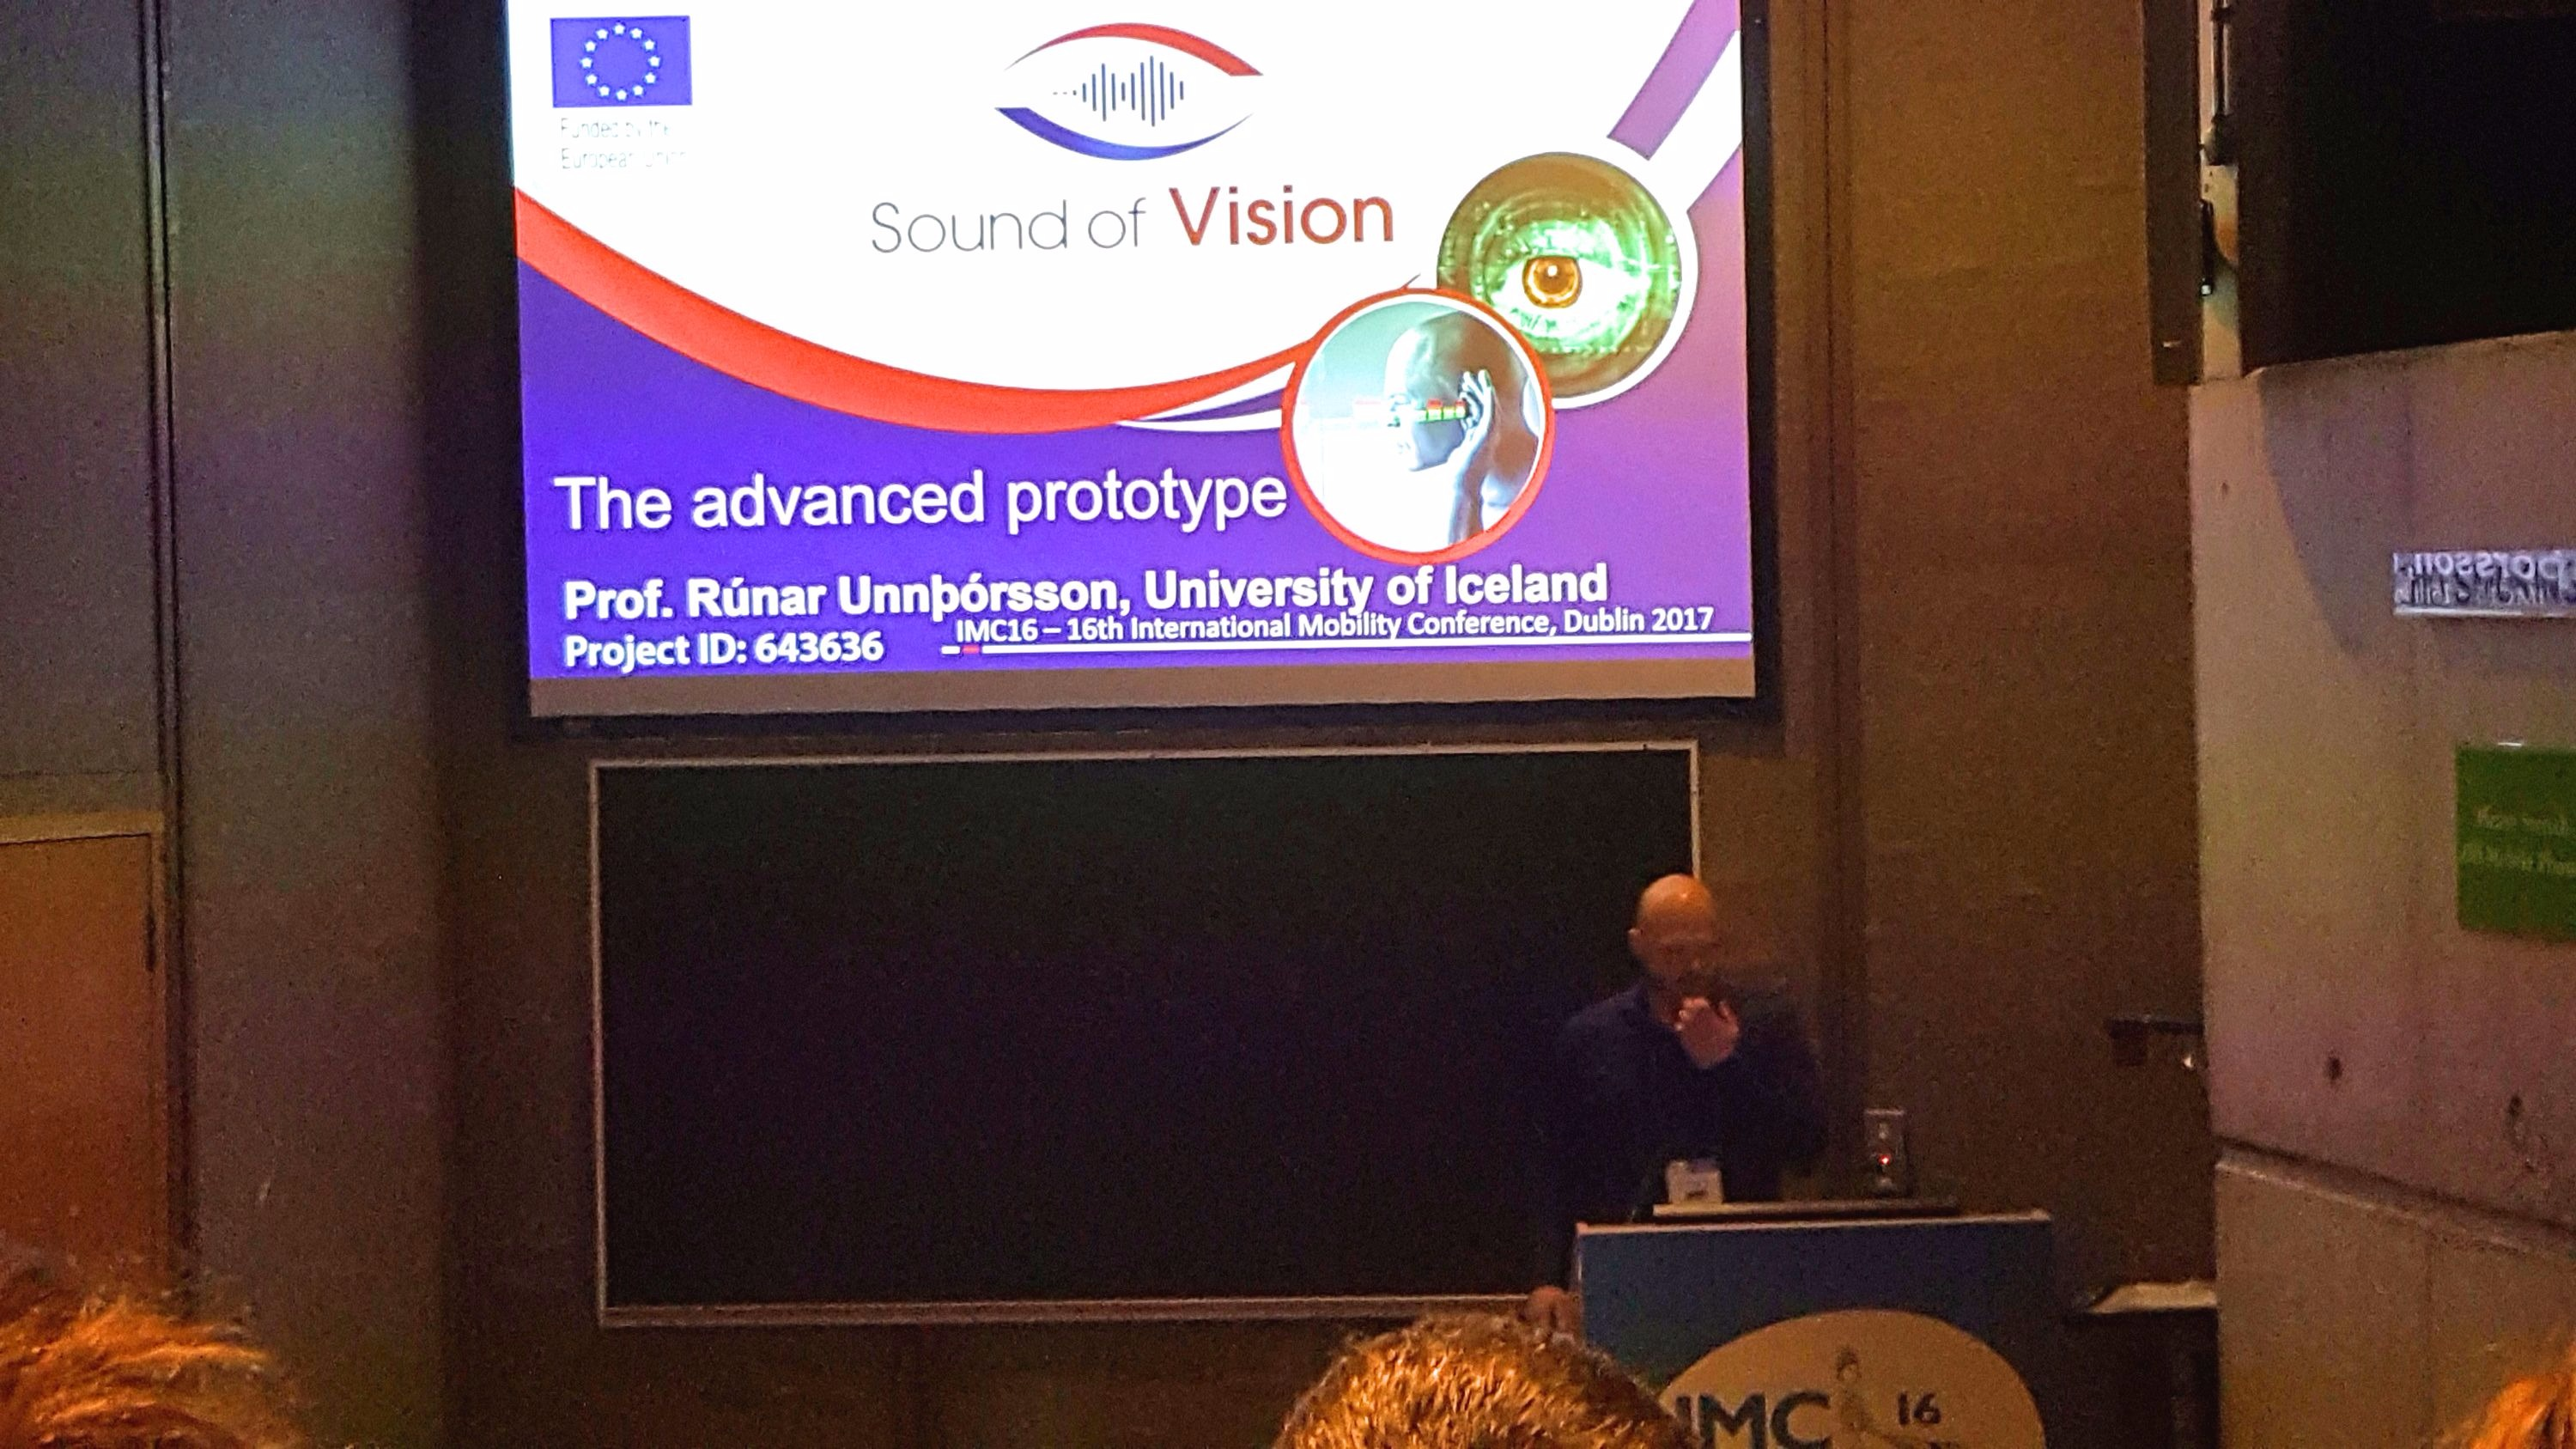 Sound of Vision advanced prototype presentation